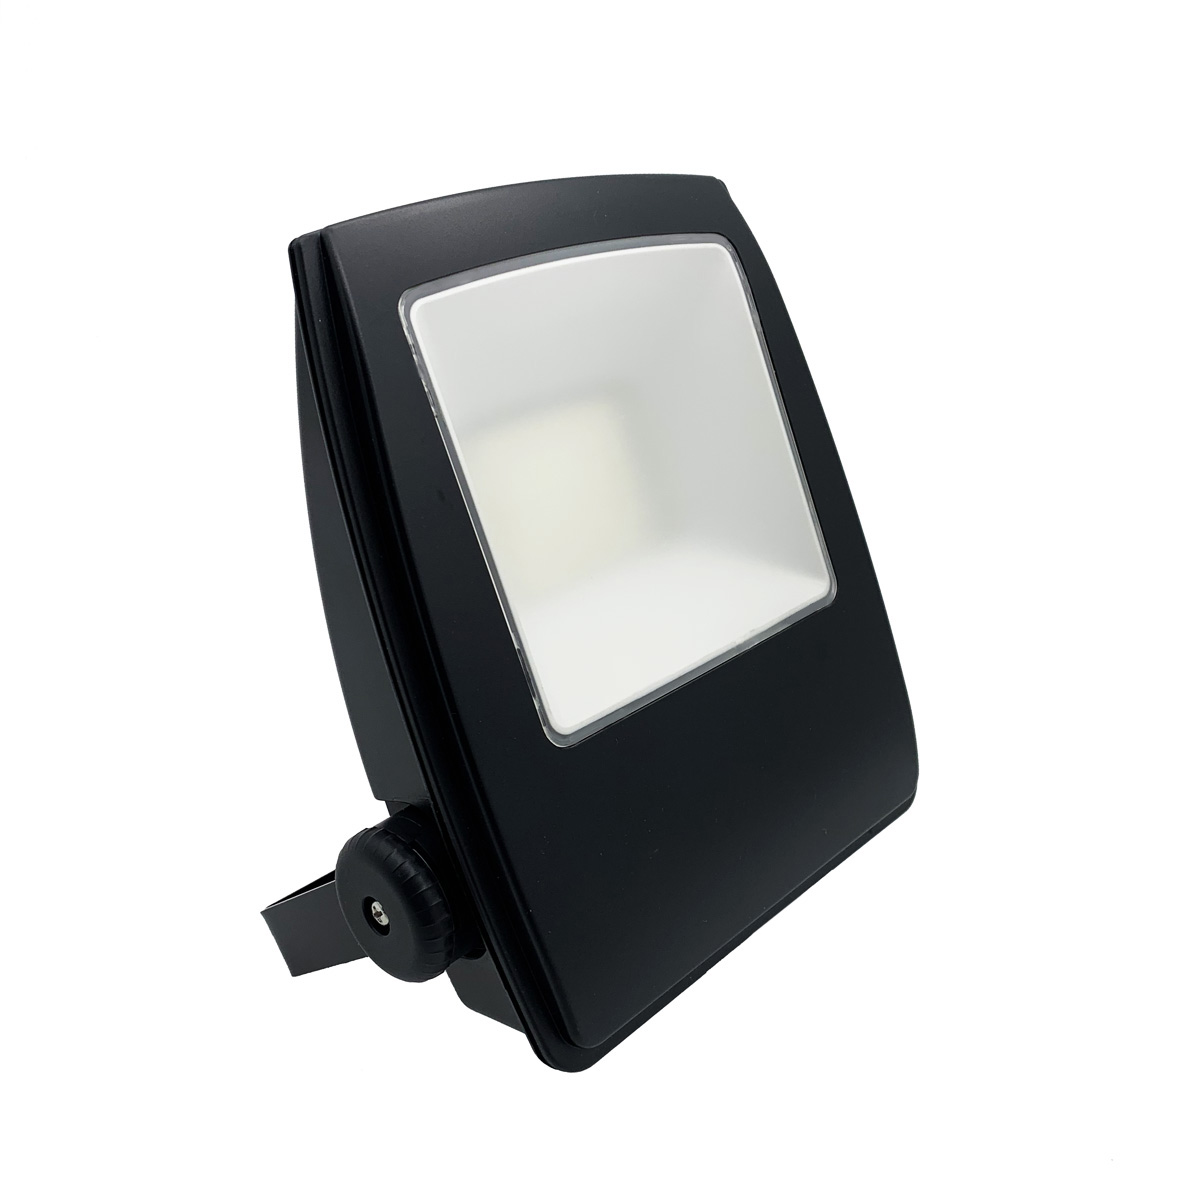 LED floodlight 30W IP65 for outdoor lighting and Black interior FL7-30W